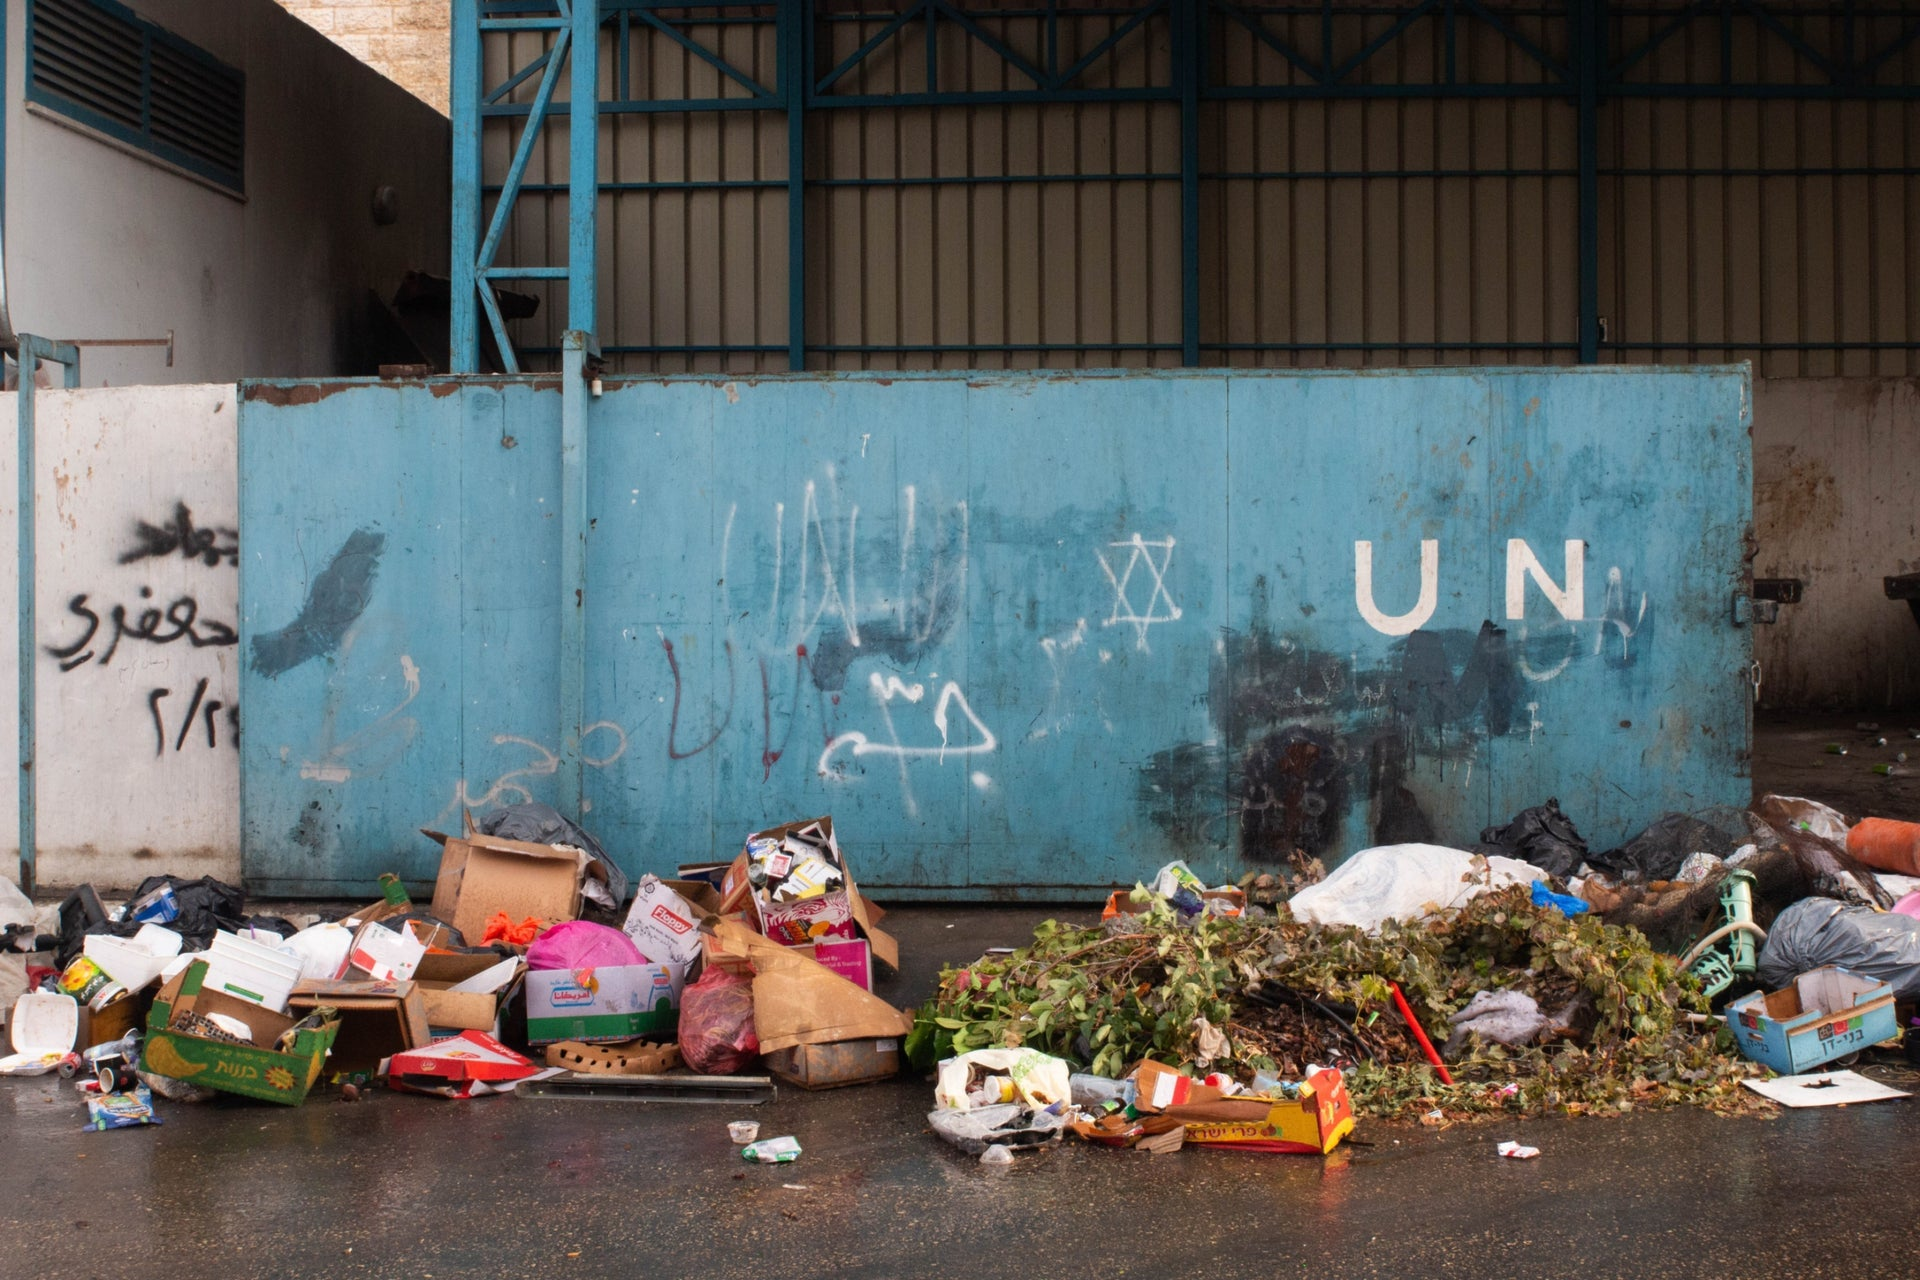 The garbage collection point in Deheisheh, organized by the UN Relief and Works Agency. The agency doesn't remove the Star of David graffiti.